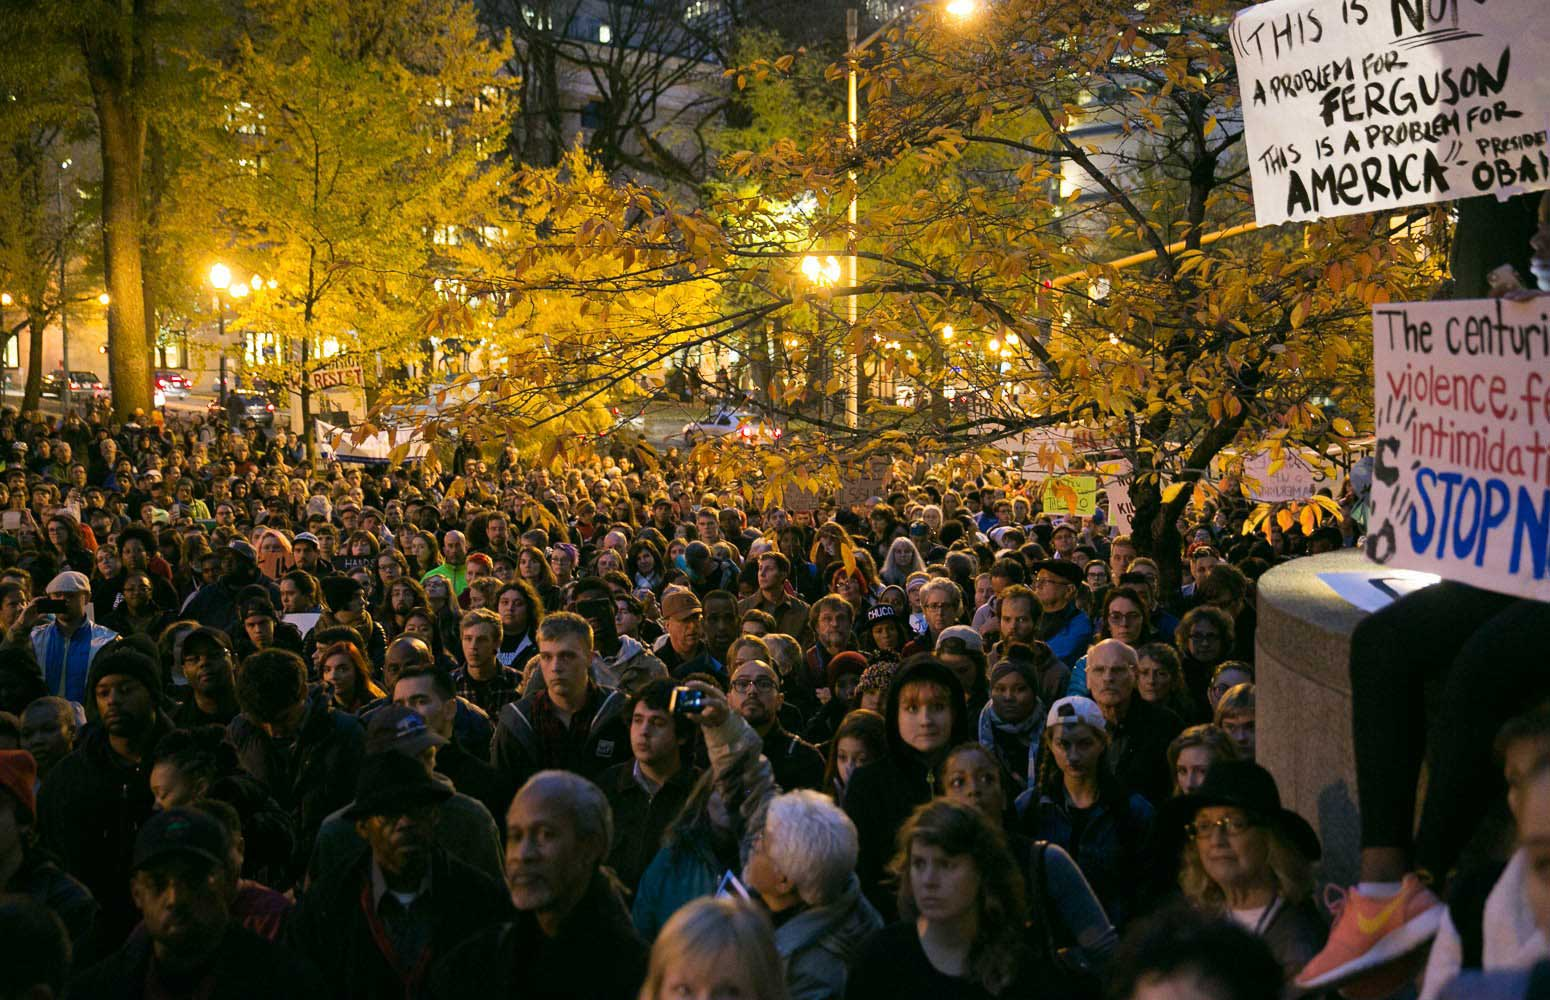 Crowds fill 3rd Avenue and Main Street during a protest in Portland, Ore. on Nov. 25, 2014.